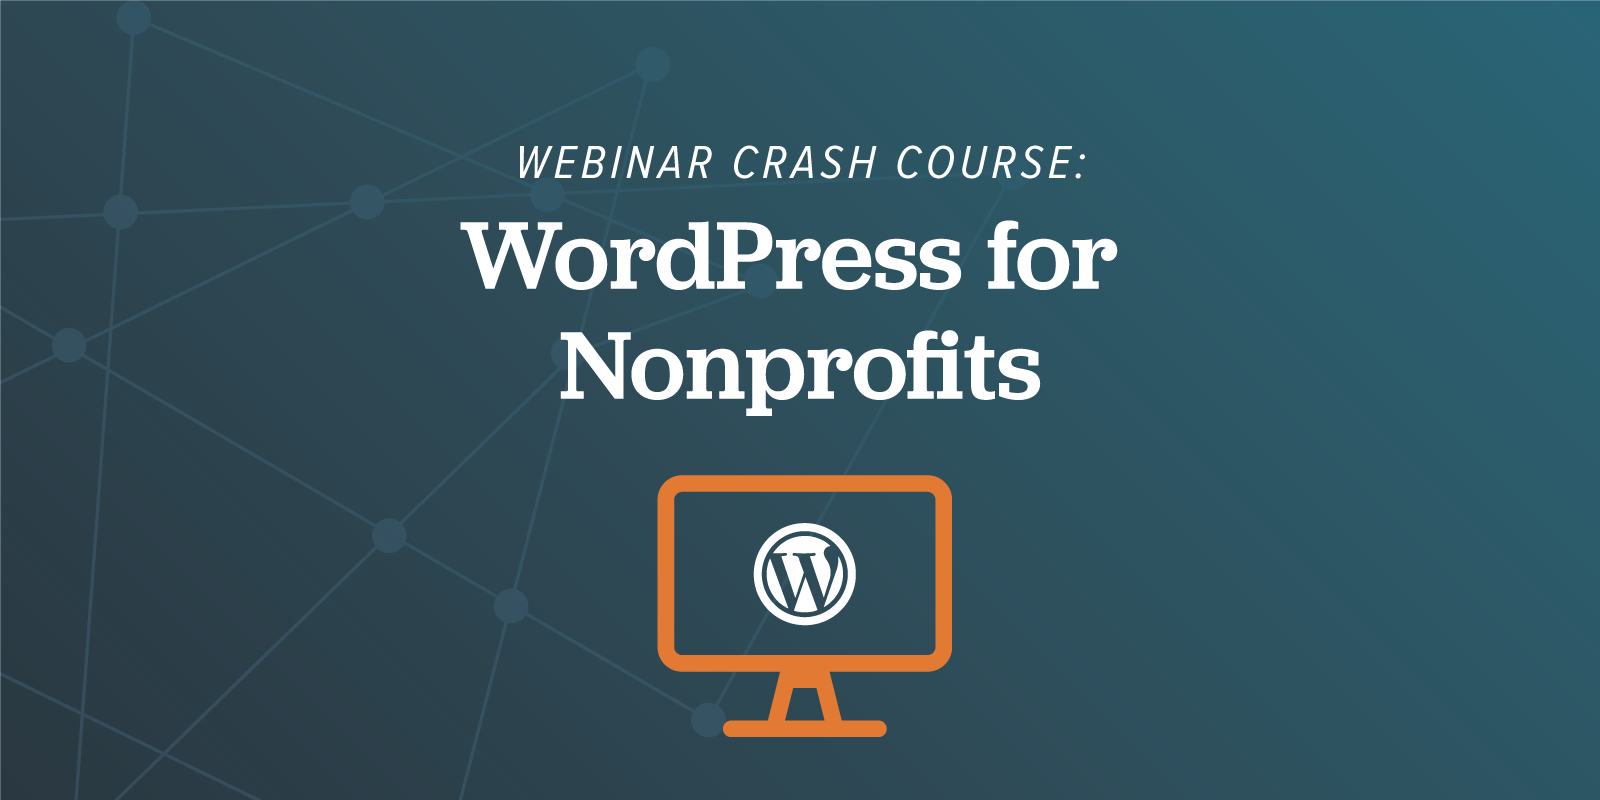 WordPress for Nonprofits Webinar